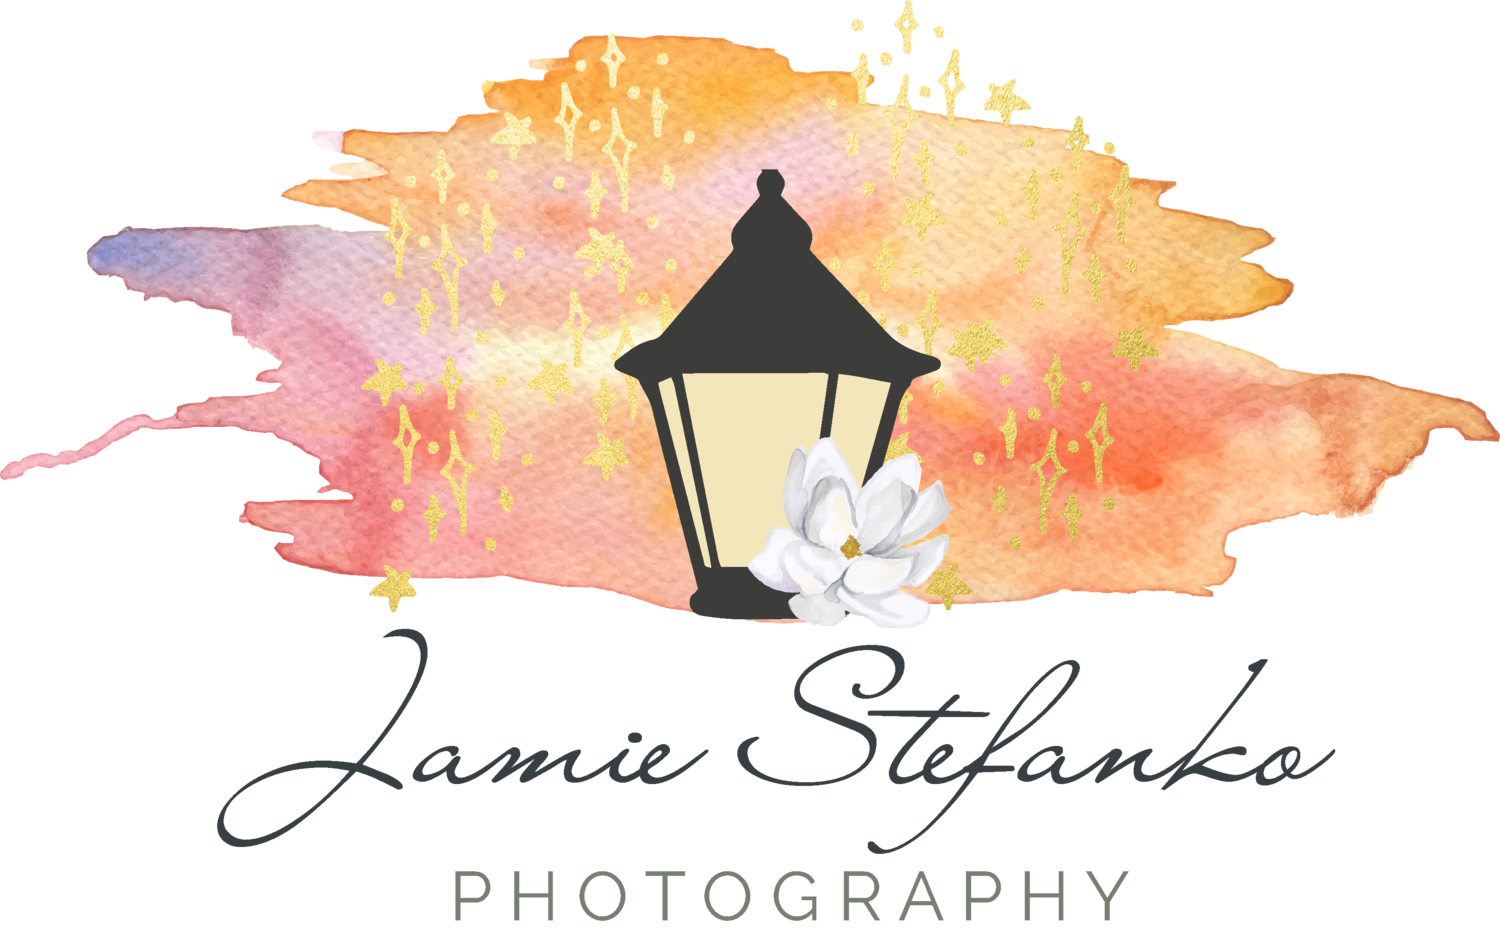 Charleston sc family jamie. Photography clipart lady photographer